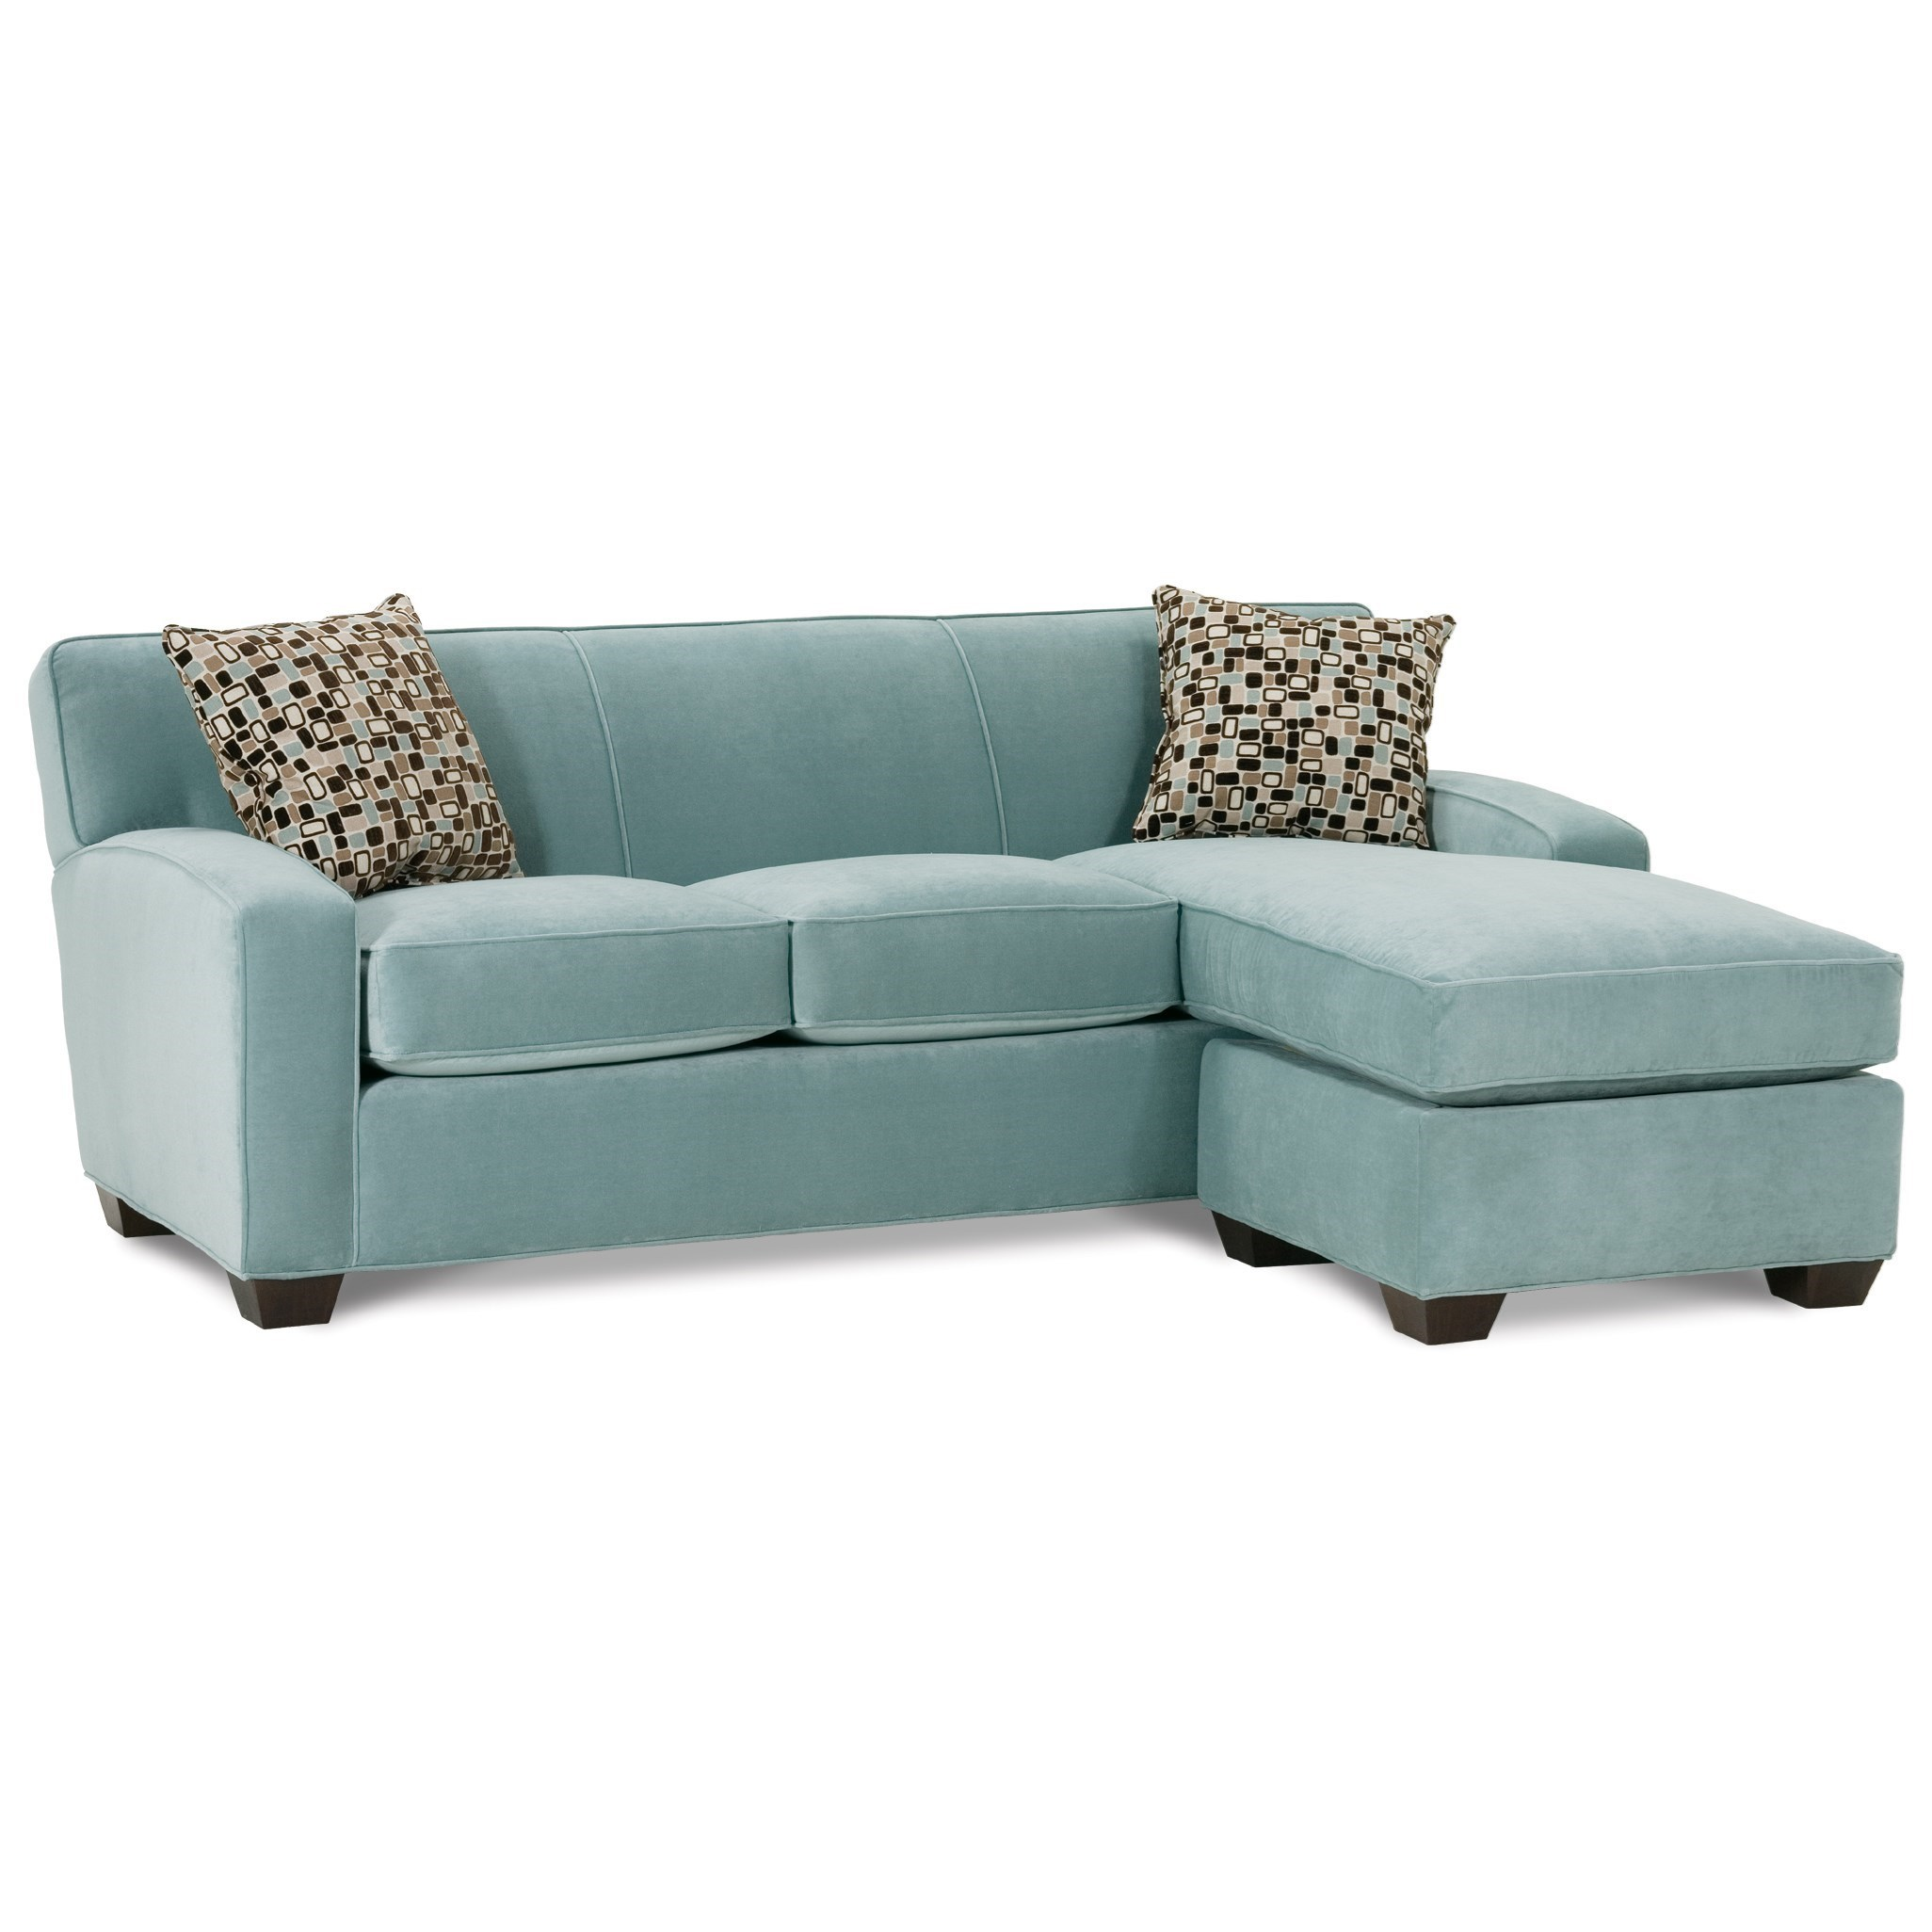 Horizon Transitional Sofa and Chaise by Rowe at Bullard Furniture